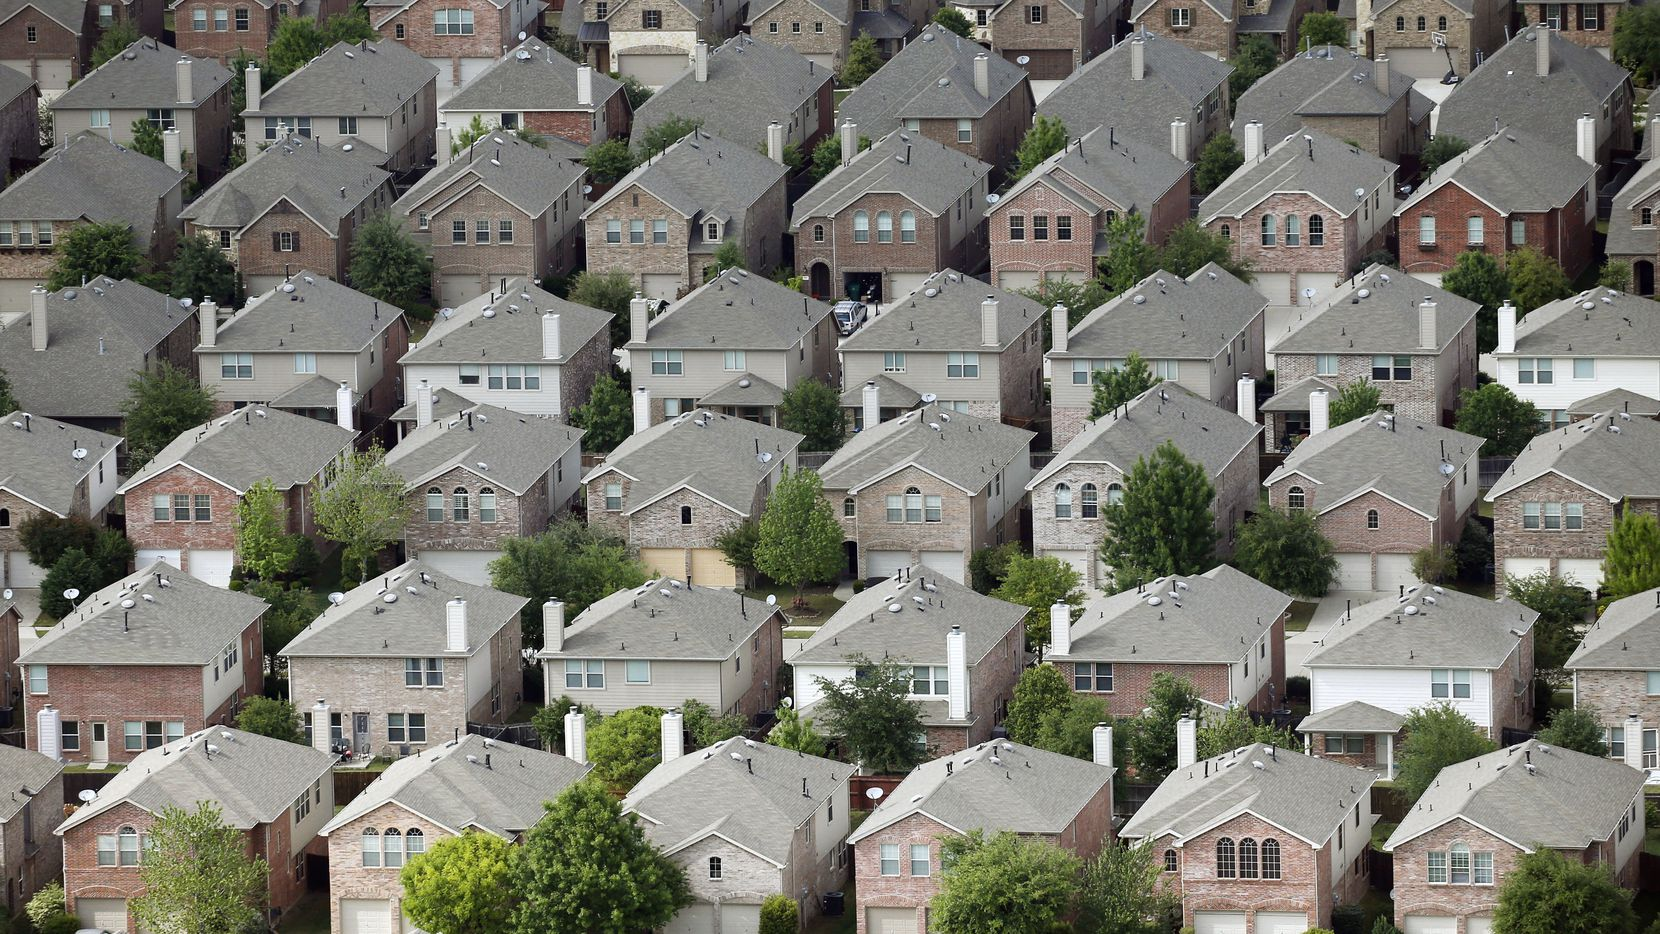 More than 4 out of 10 D-FW residents are renters, according to the latest census data.